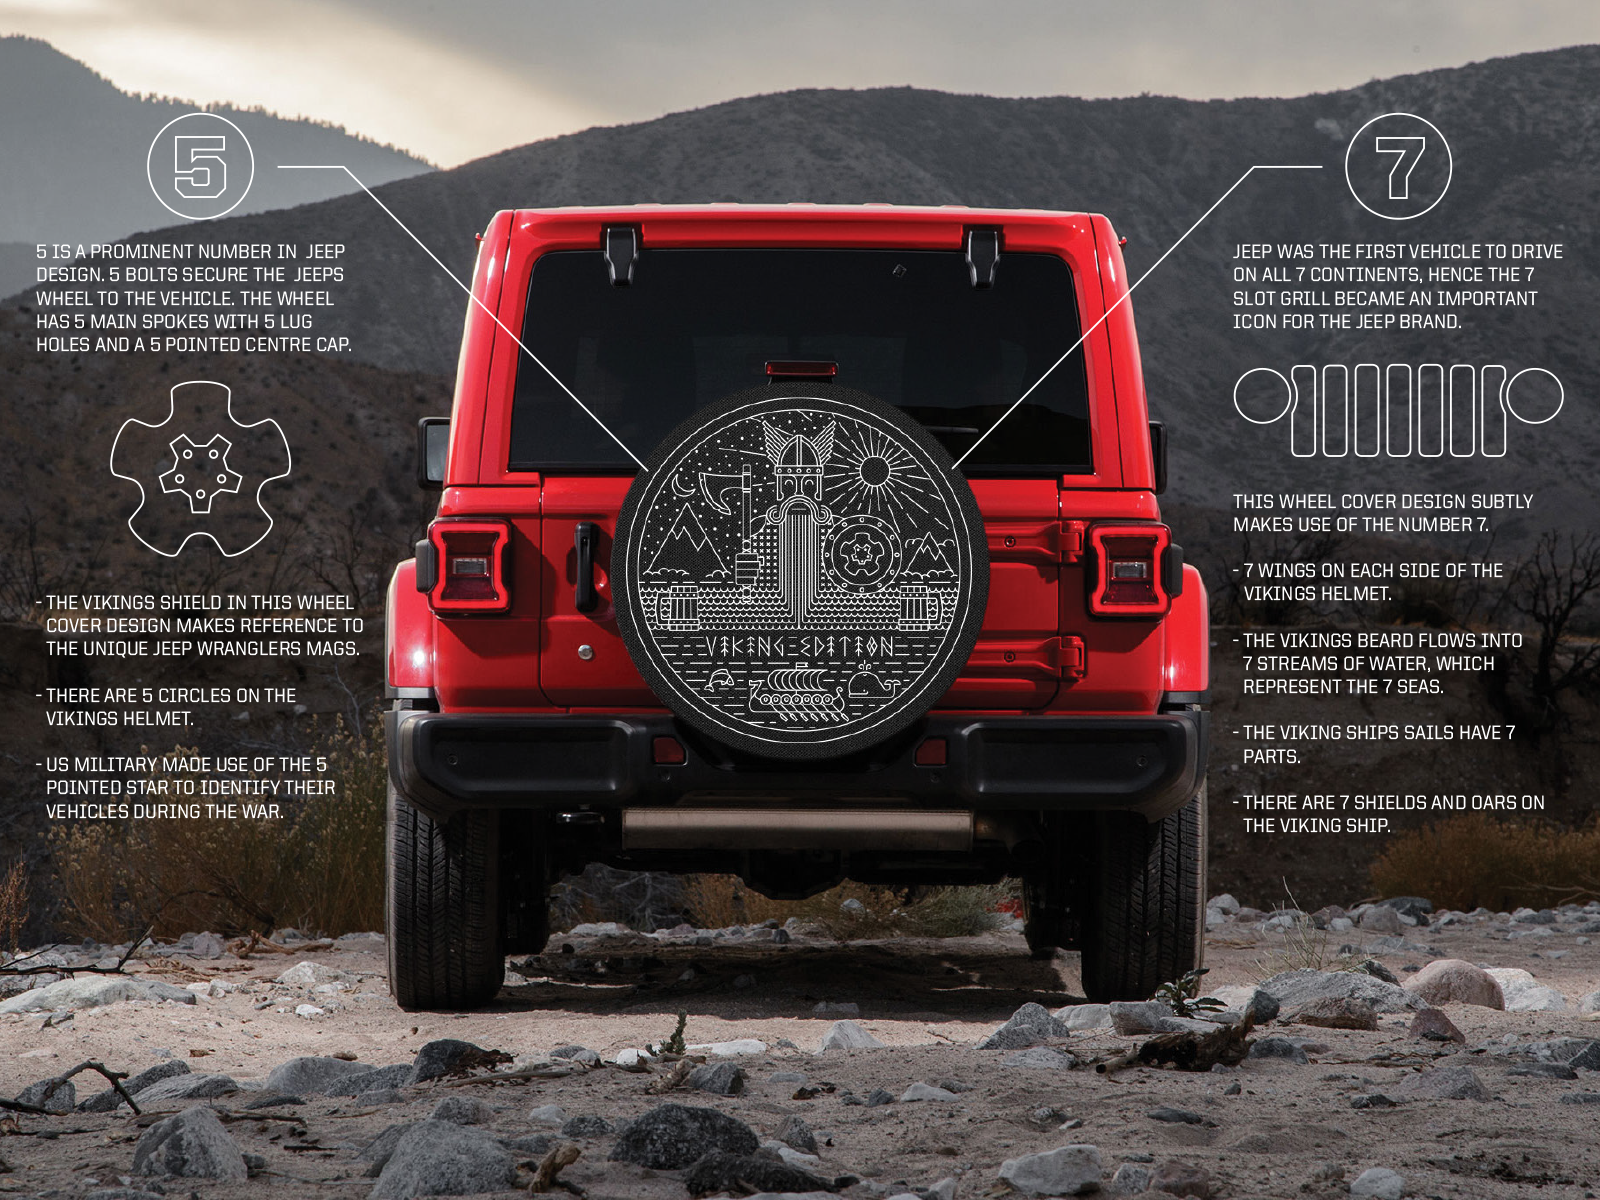 Jeep Wrangler Viking Edition Wheel Cover By Nathan Venn On Dribbble